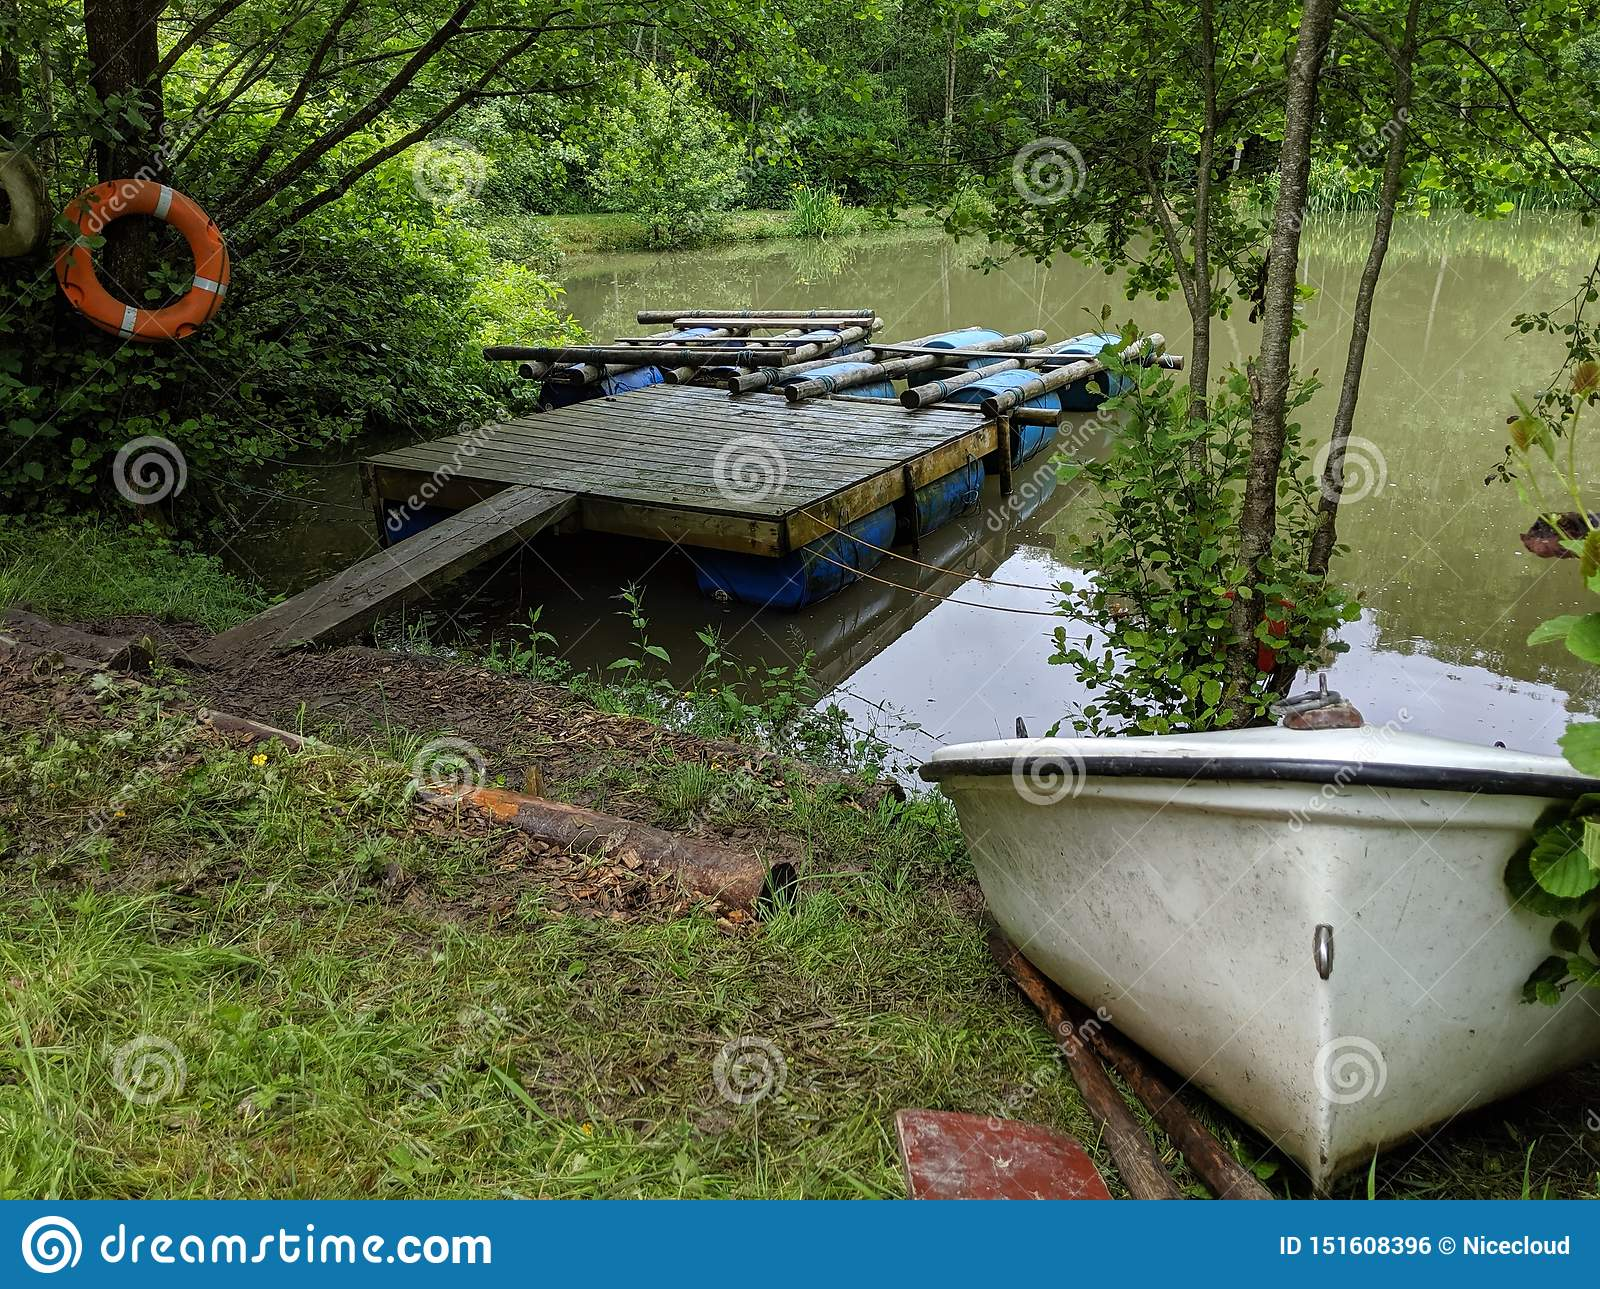 A pair of rafts on a pontoon with a small rowing boat on the shore bank